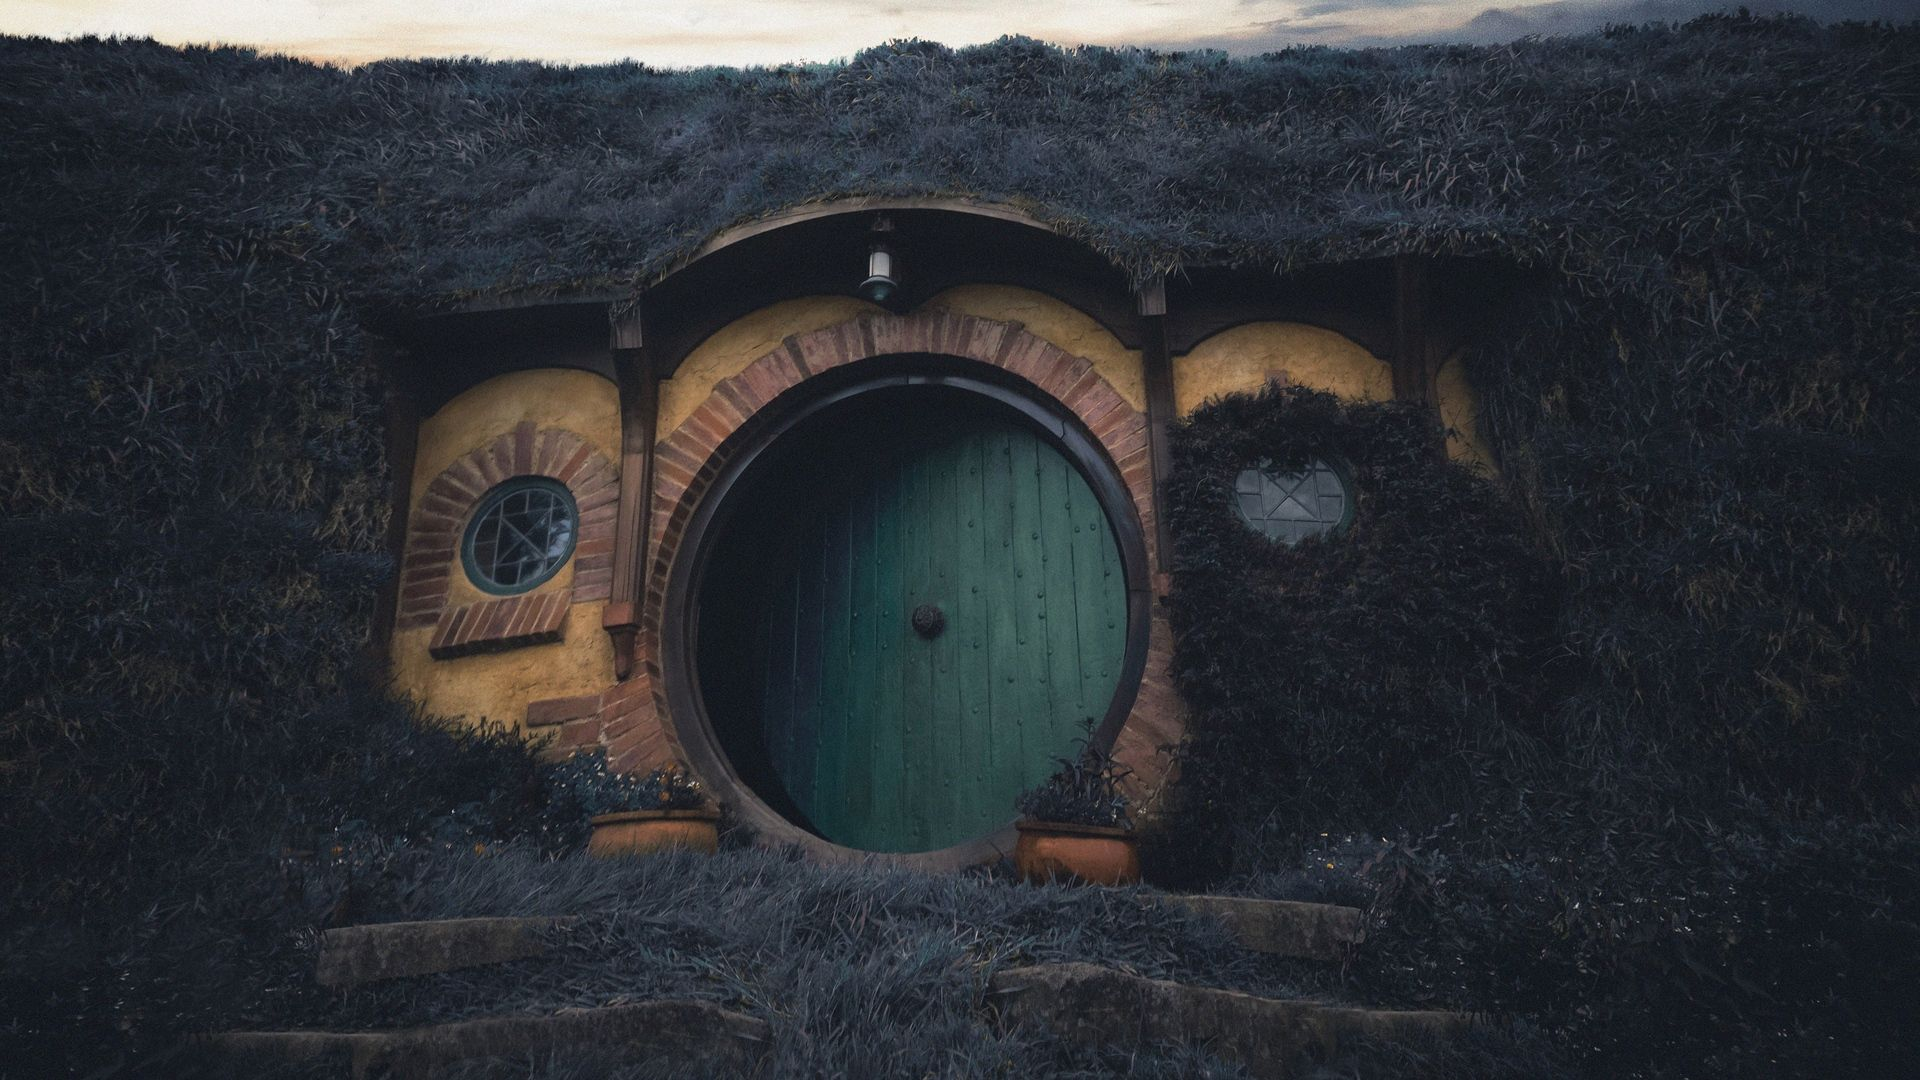 1920x1080 Download wallpaper 1920x1080 building, door, hobbiton movie set, new ...